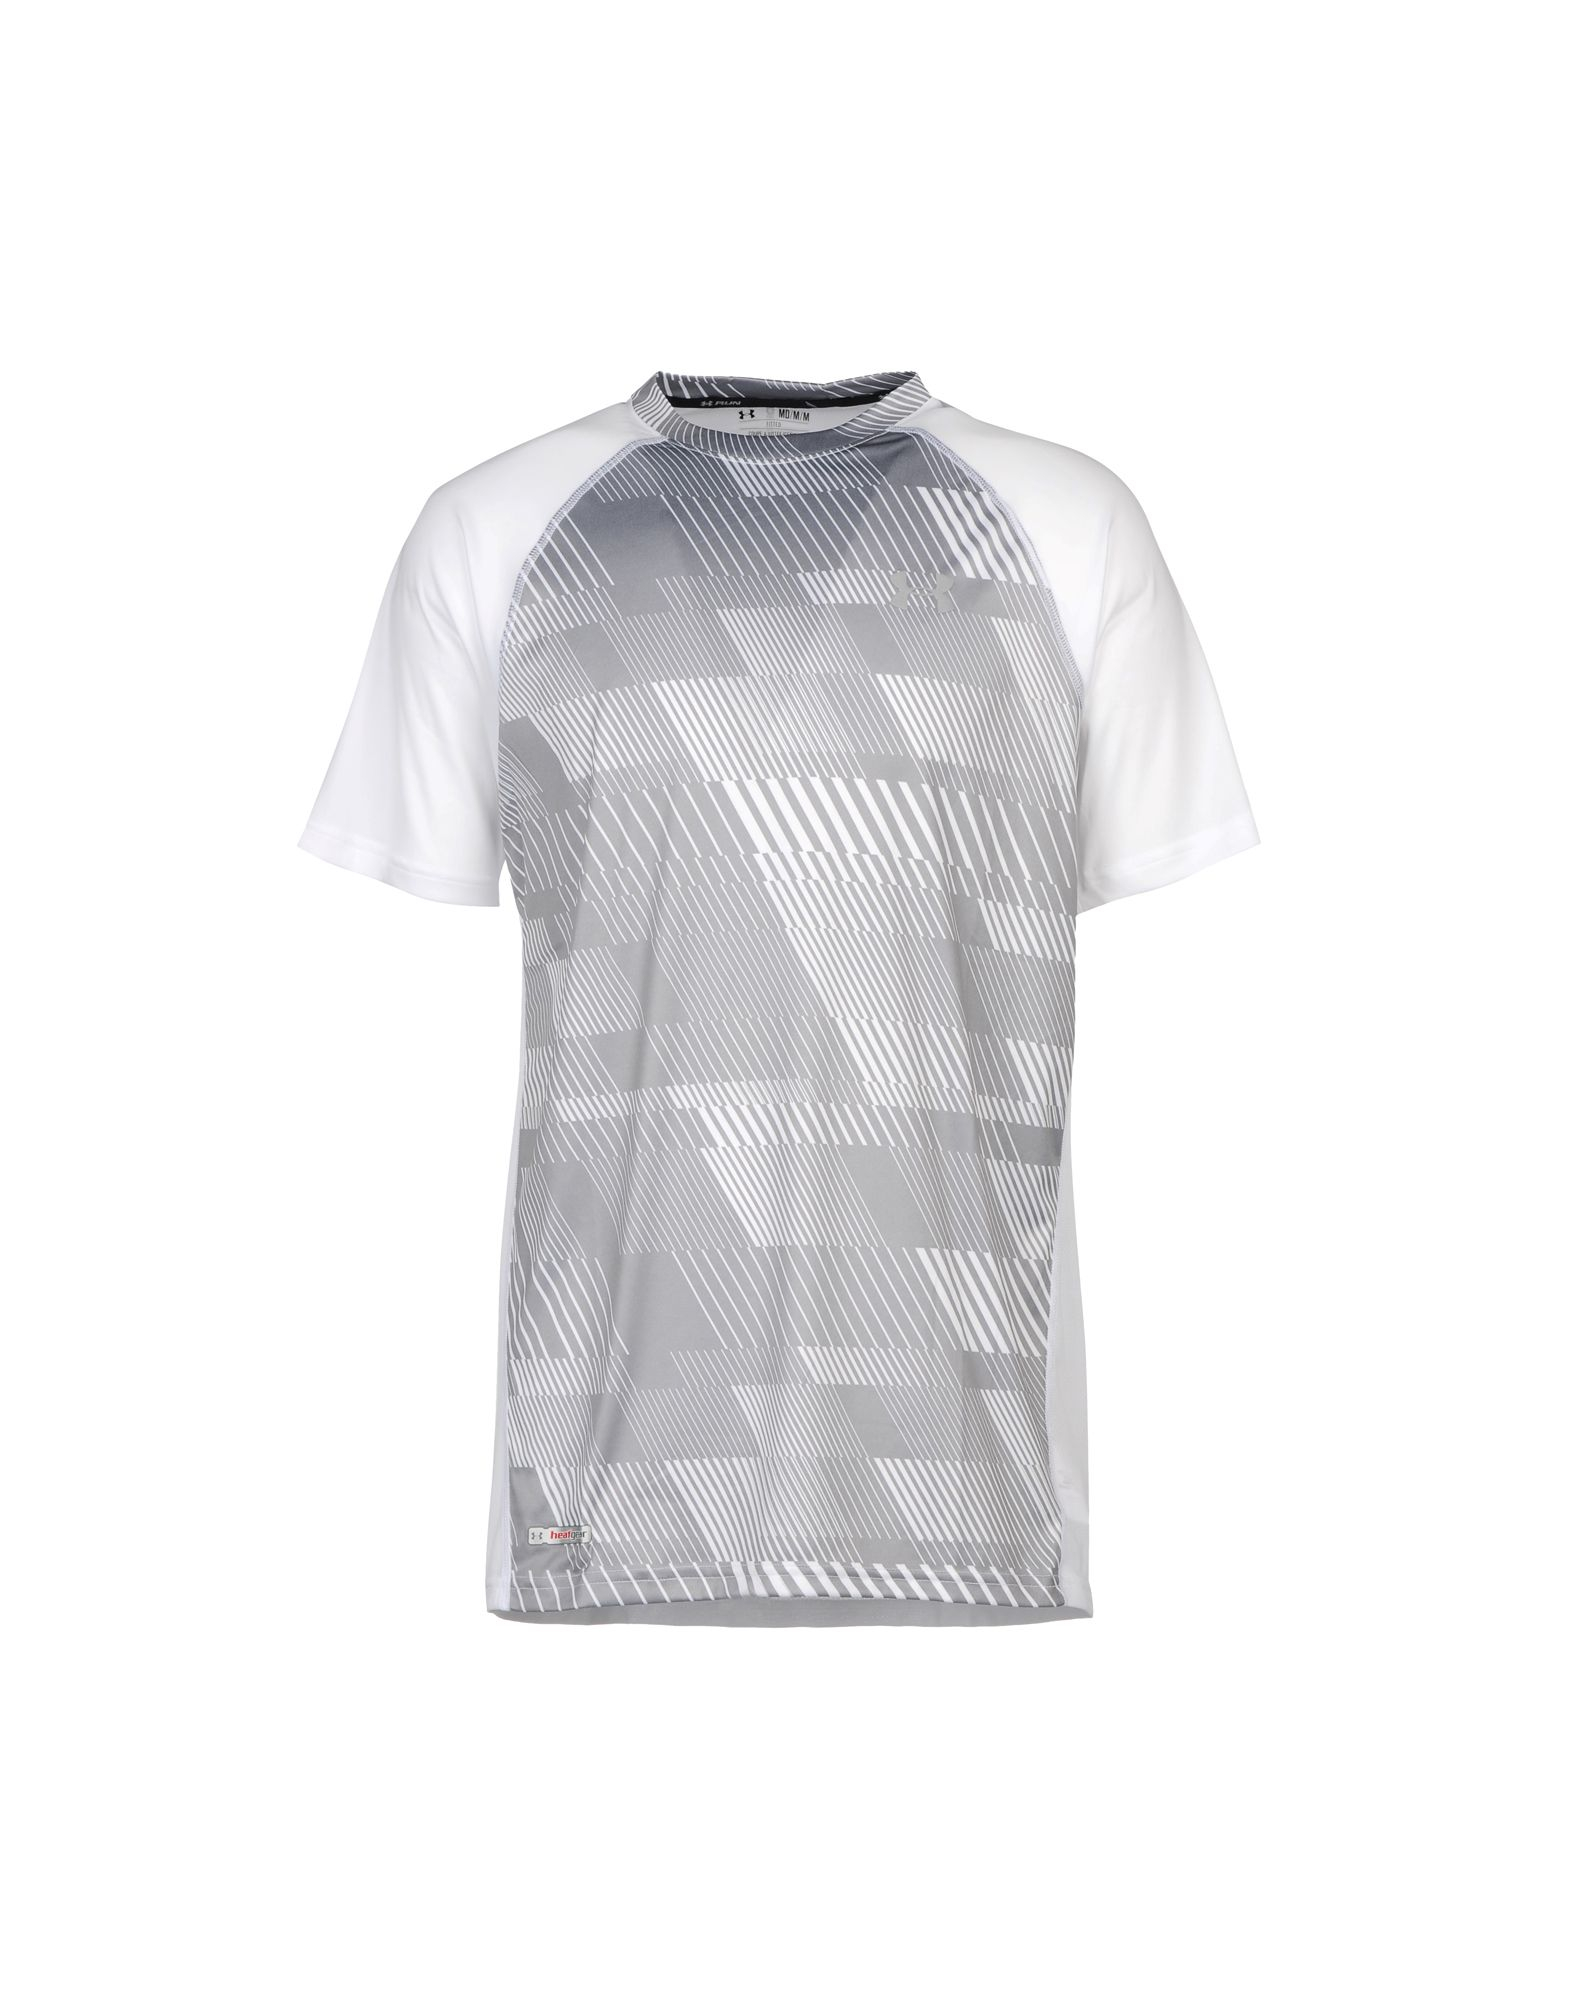 Under armour t shirt in gray for men grey lyst for Gray under armour shirt